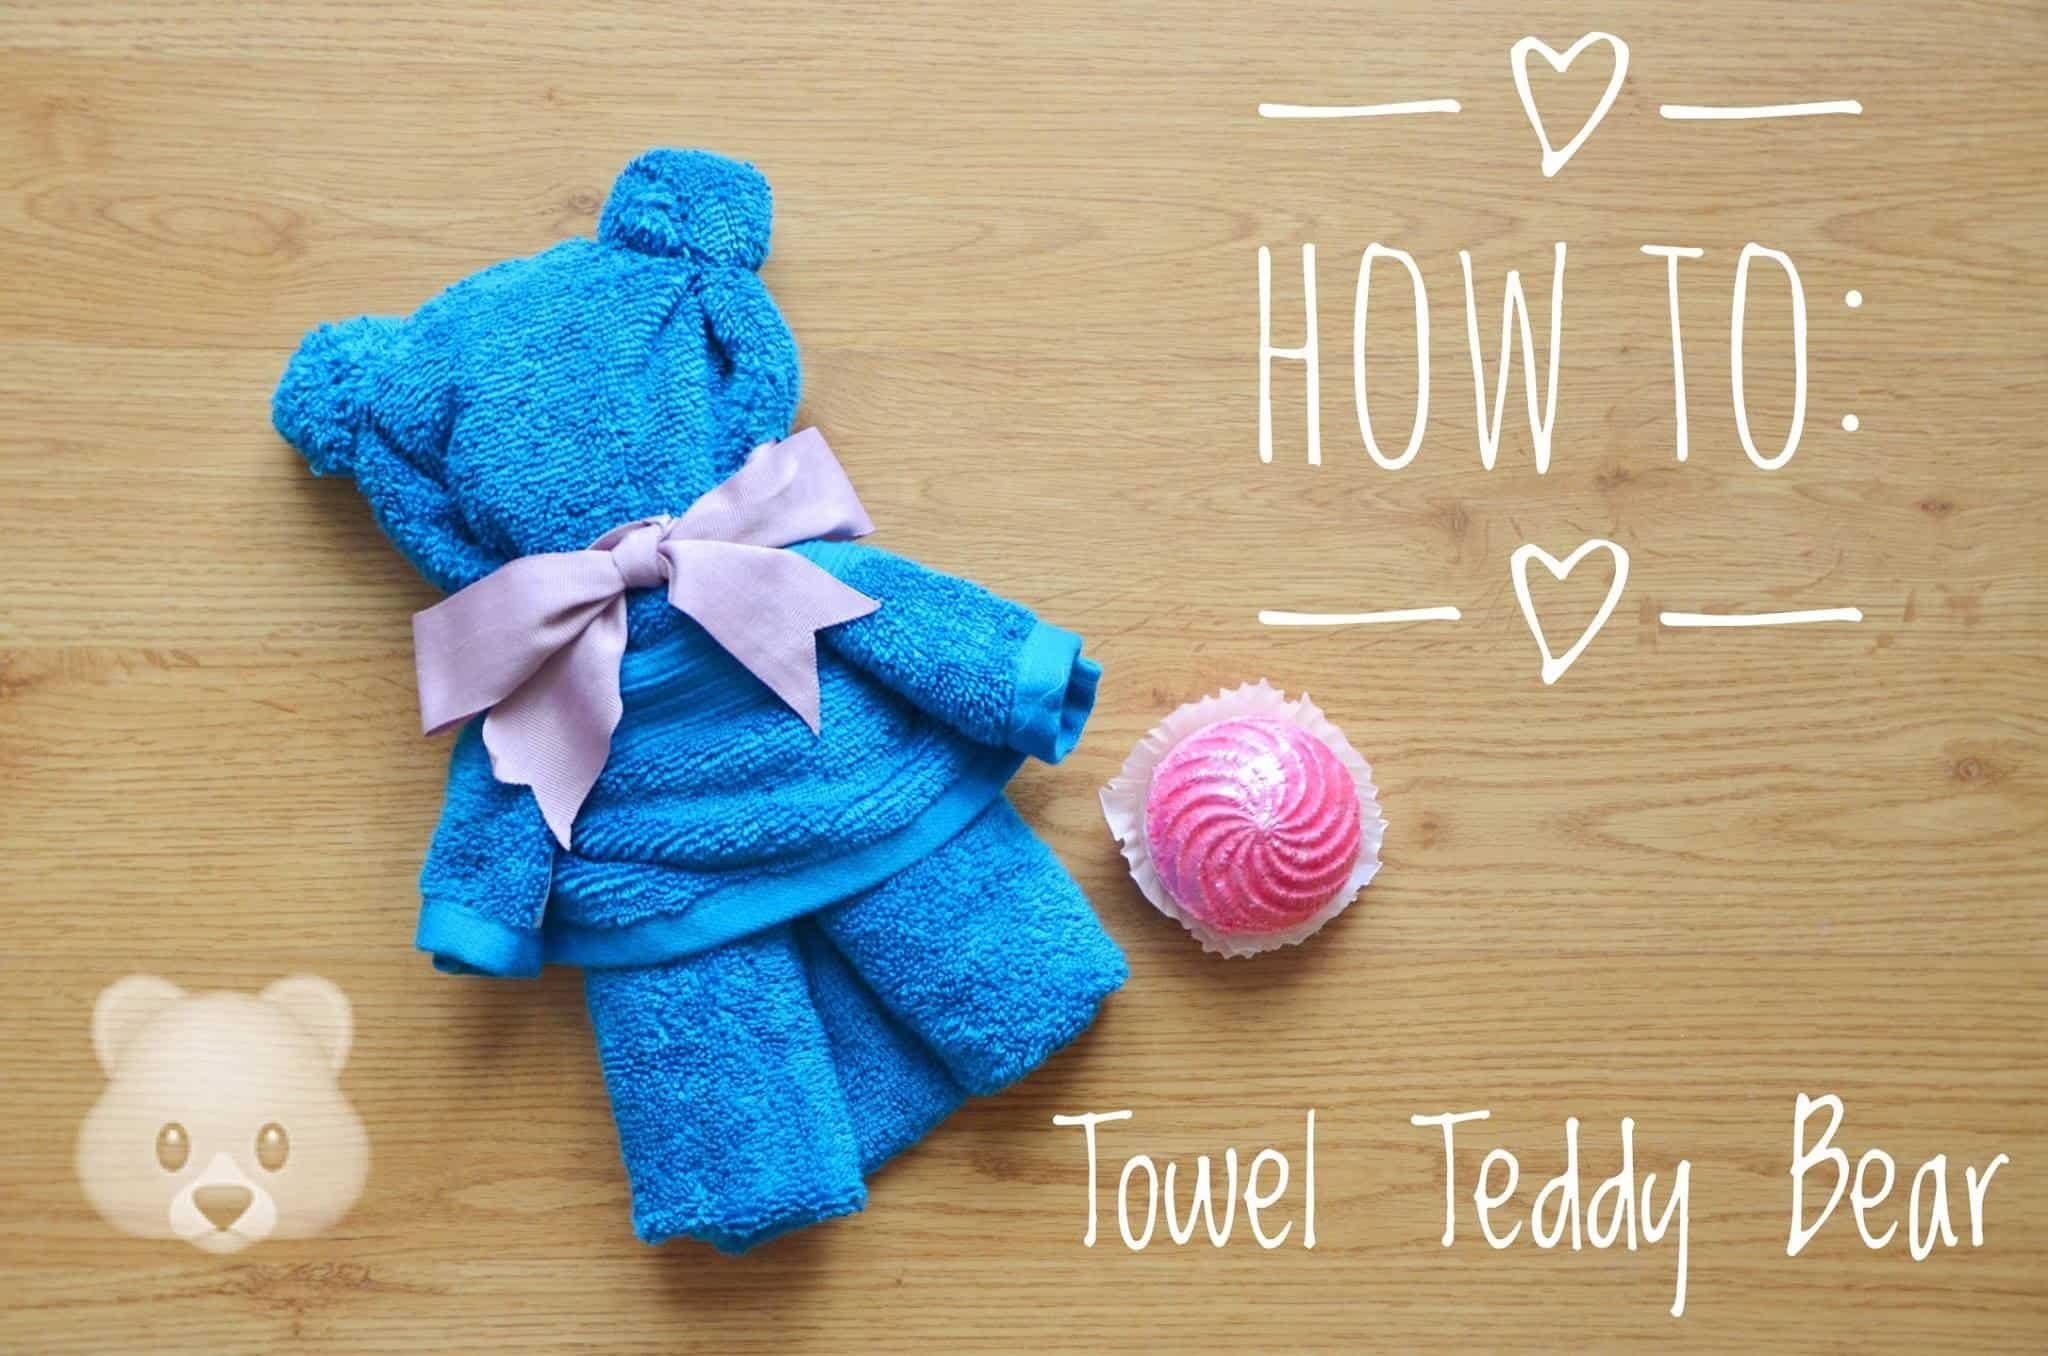 Beach towel memory bear